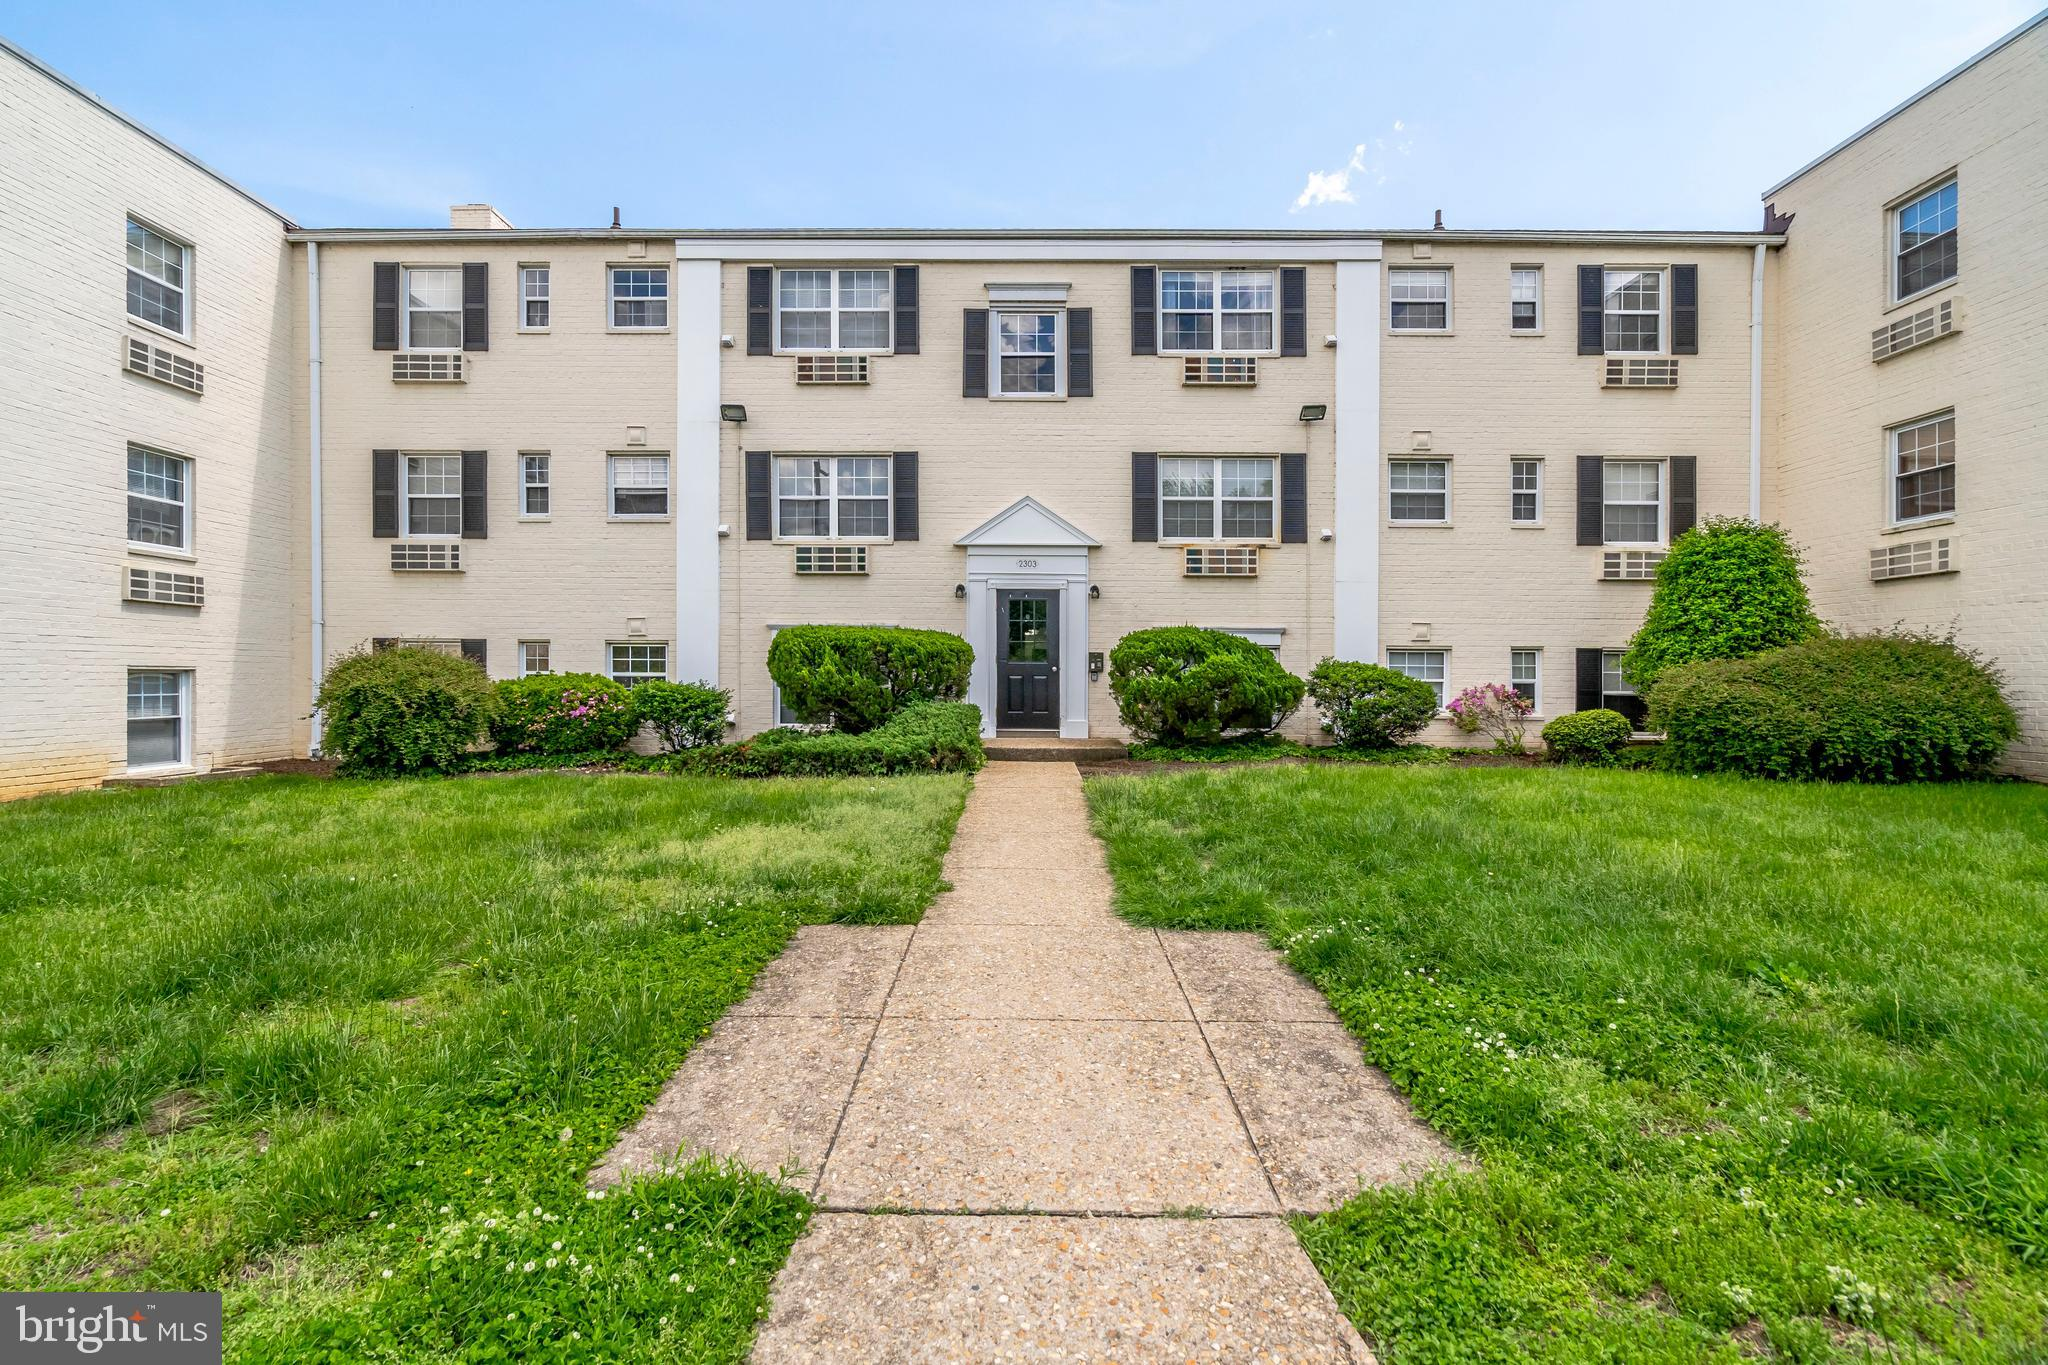 The best deal in the DMV! Own for less than you can rent! You can live right across the street from Huntington Metro for an estimated monthly mortgage payment (PITI) of less than $850 per month! This bright, open, and airy condo has been recently painted, and is move-in ready. This home is a commuter's dream - you can be on the Metro, or on the beltway, within 5 minutes.Furniture included in list price if the buyer wants to keep it.